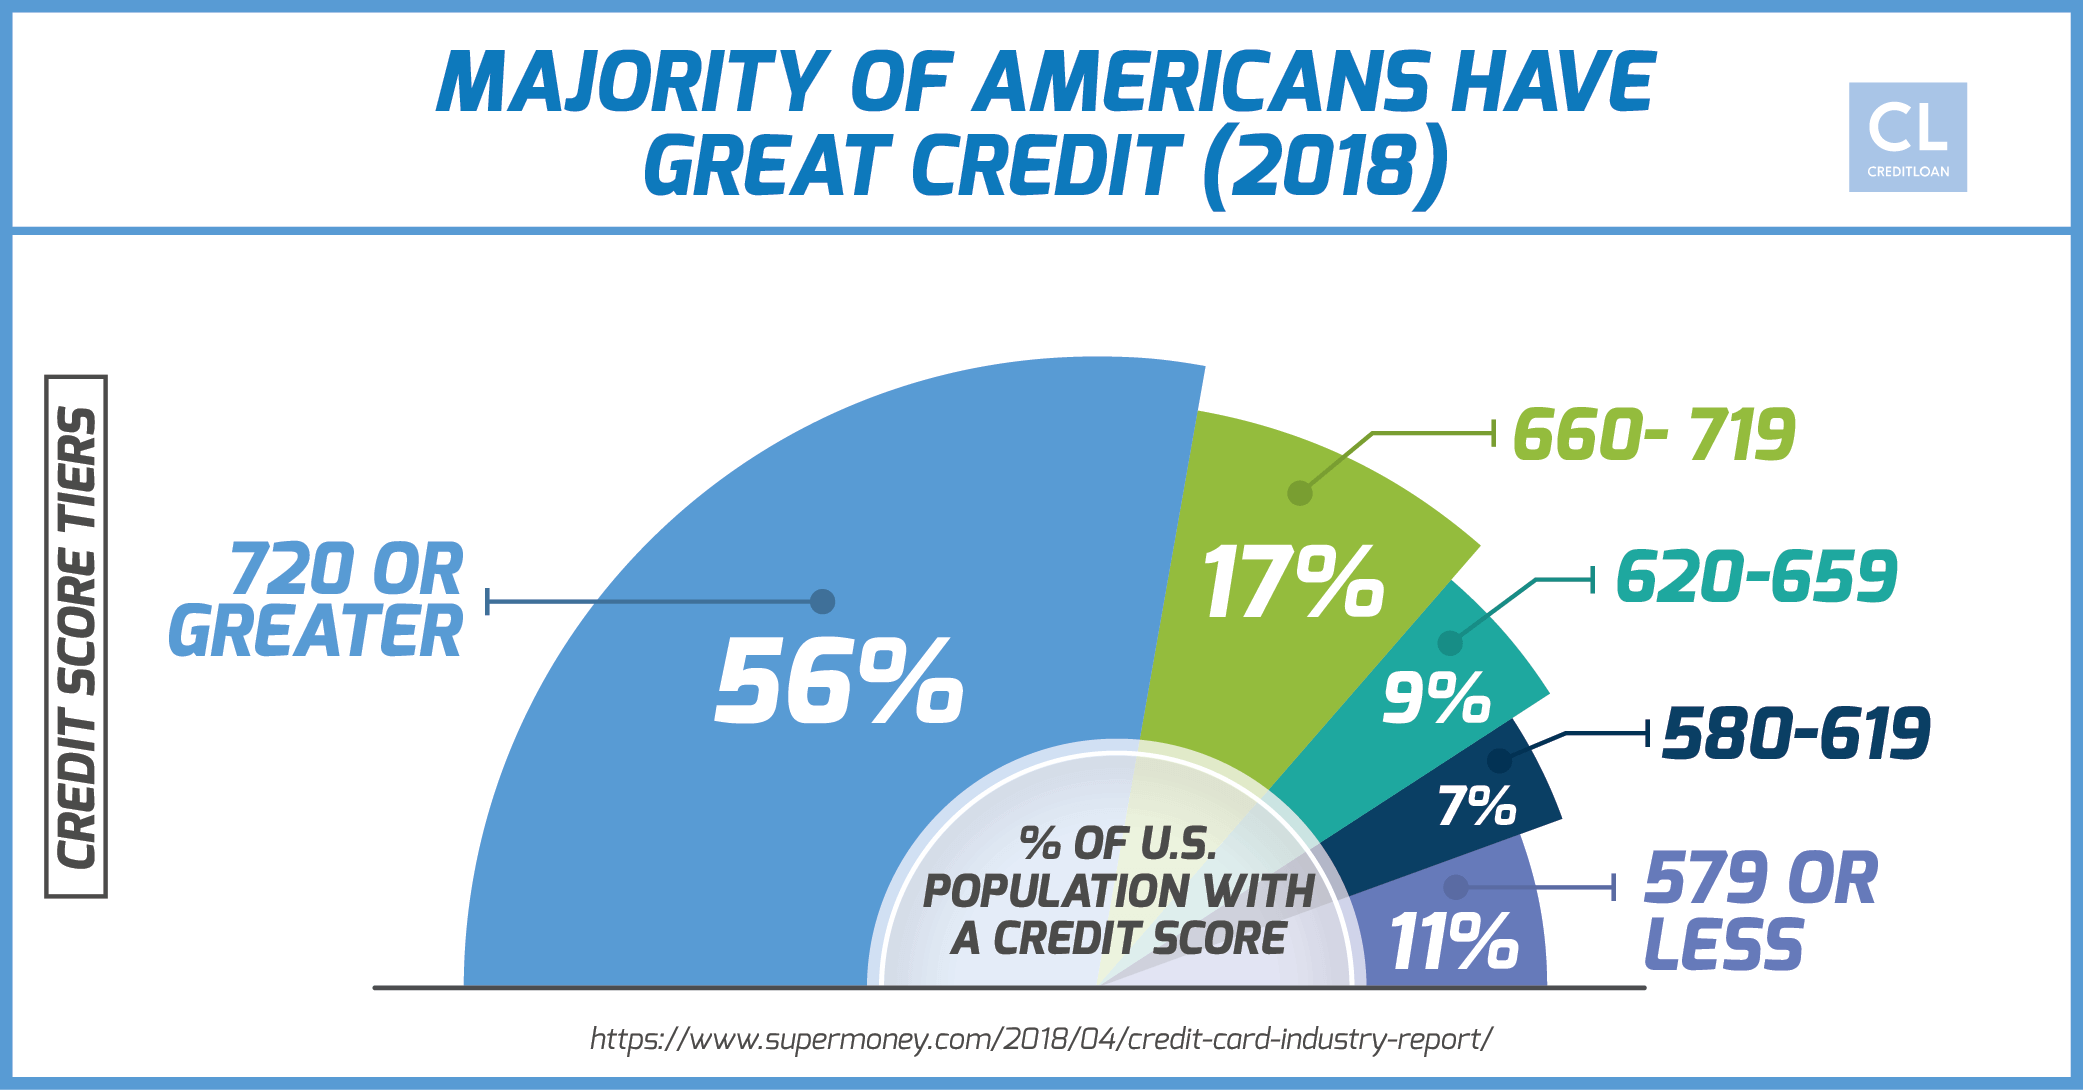 Majority of Americans Have Great Credit in 2018